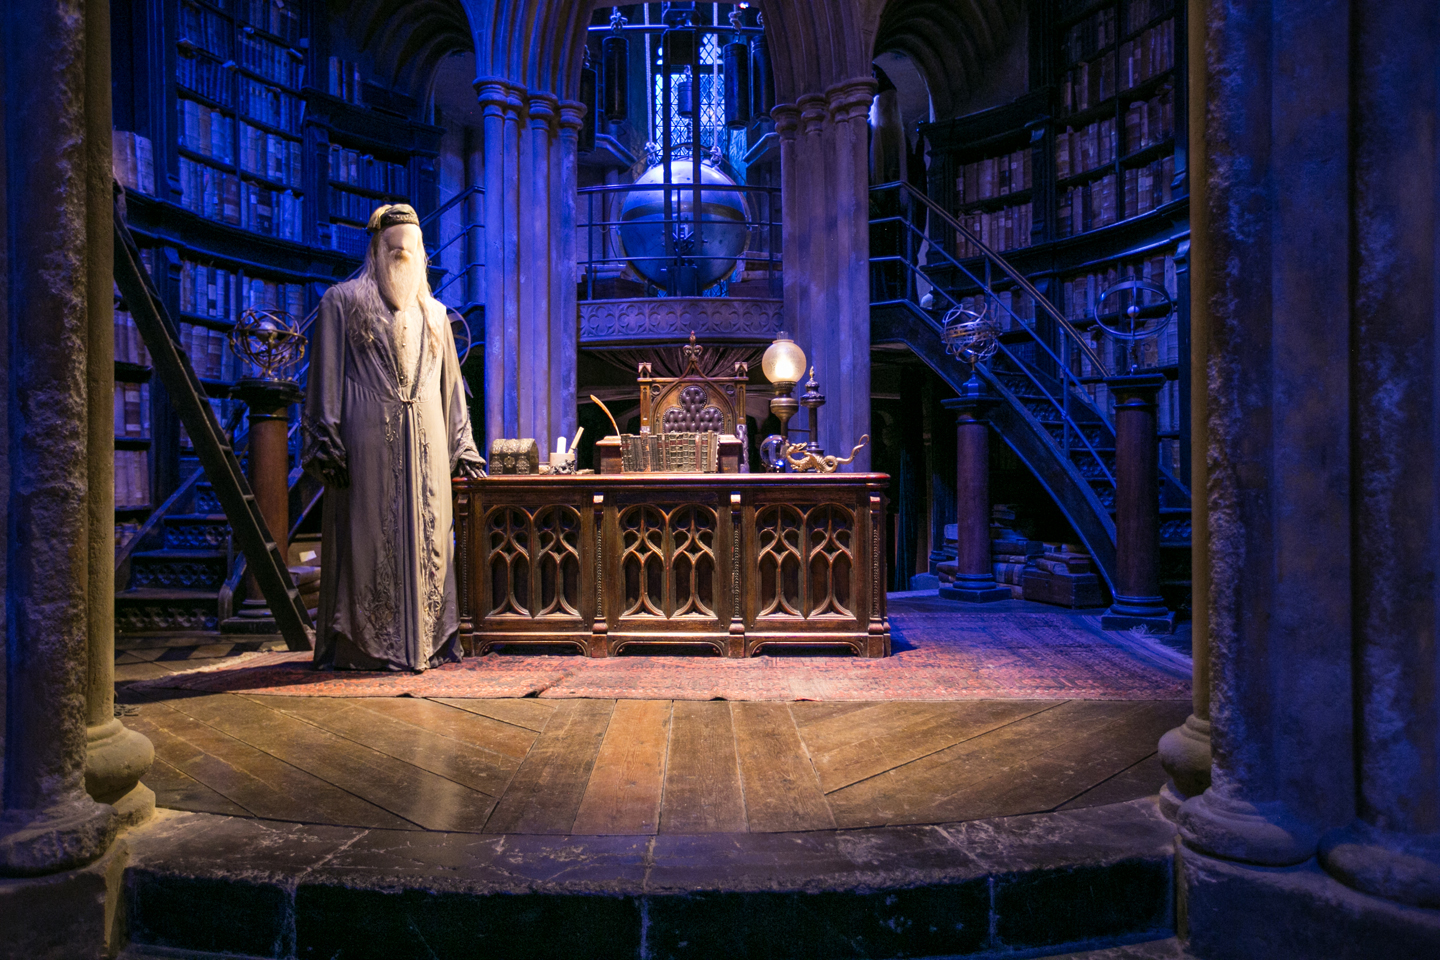 harry-potter-studio-tour-dumbledoor-office